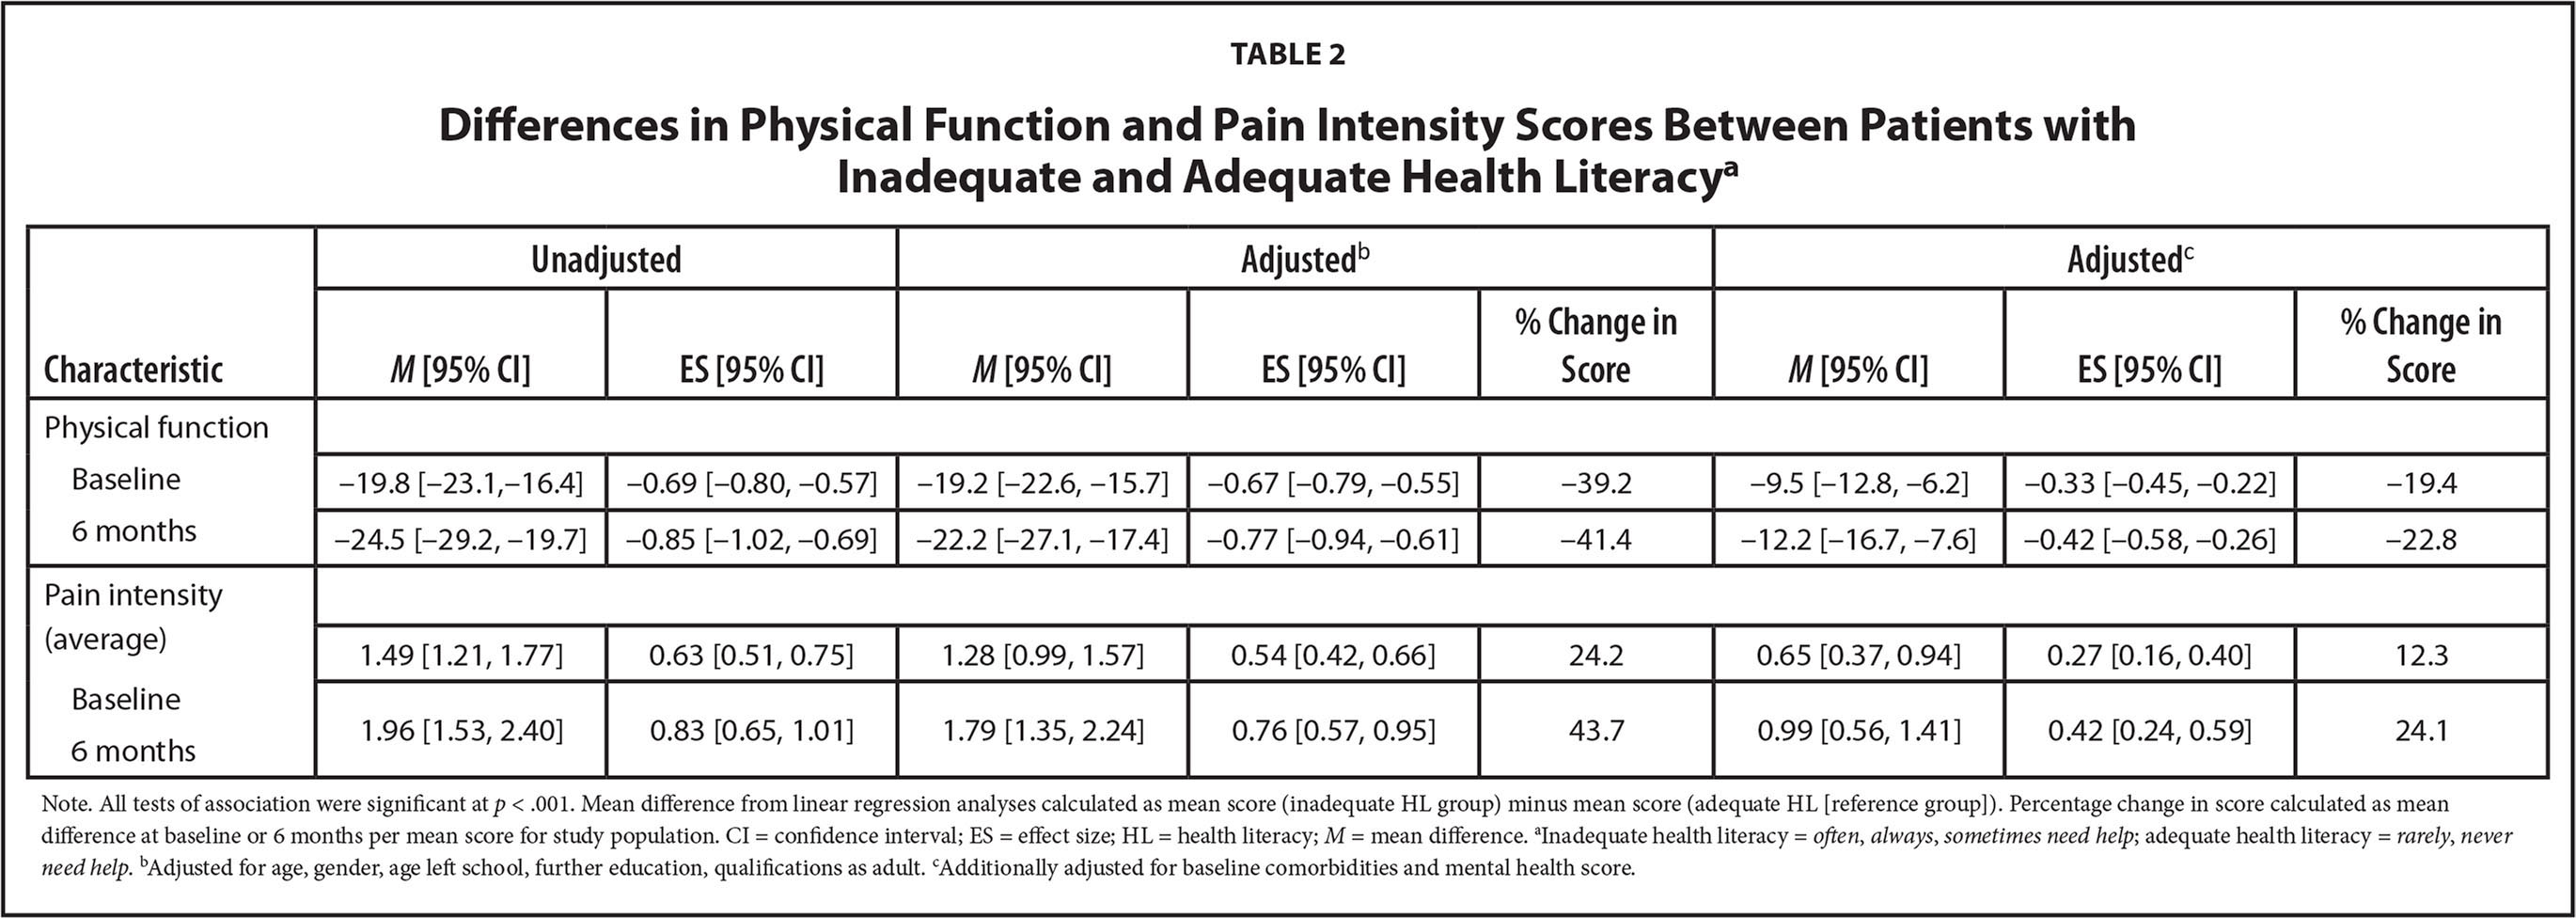 Differences in Physical Function and Pain Intensity Scores Between Patients with Inadequate and Adequate Health Literacya